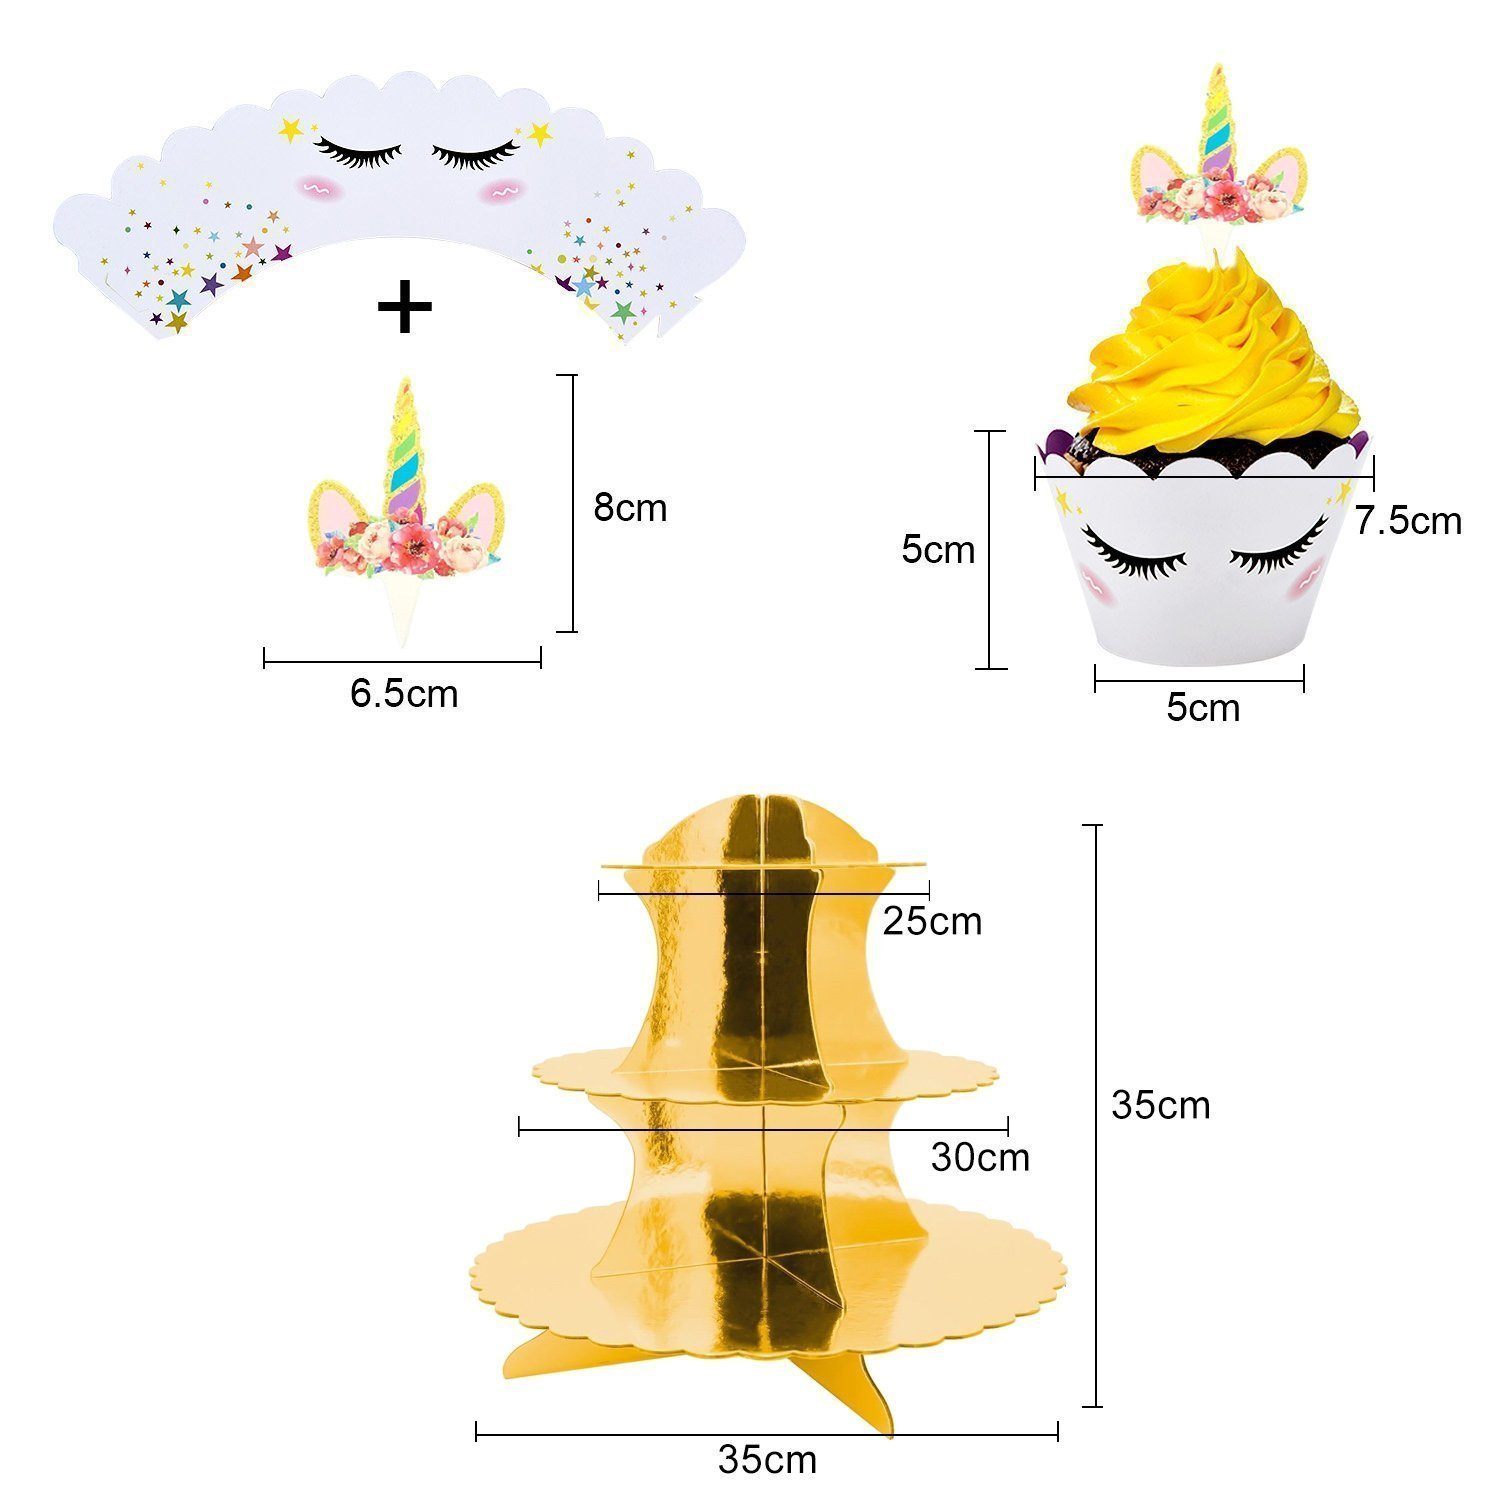 Rainbow Unicorn Cupcake Toppers and Wrappers w BONUS Gold Cupcake Stand - Themed Glitter Horn Cake Topper + Rainbow Wrapper DIY Baking Decorations Kit, Kids Birthday Party Supplies Accessories| 48pcs by Quality Party Supplies (Image #4)